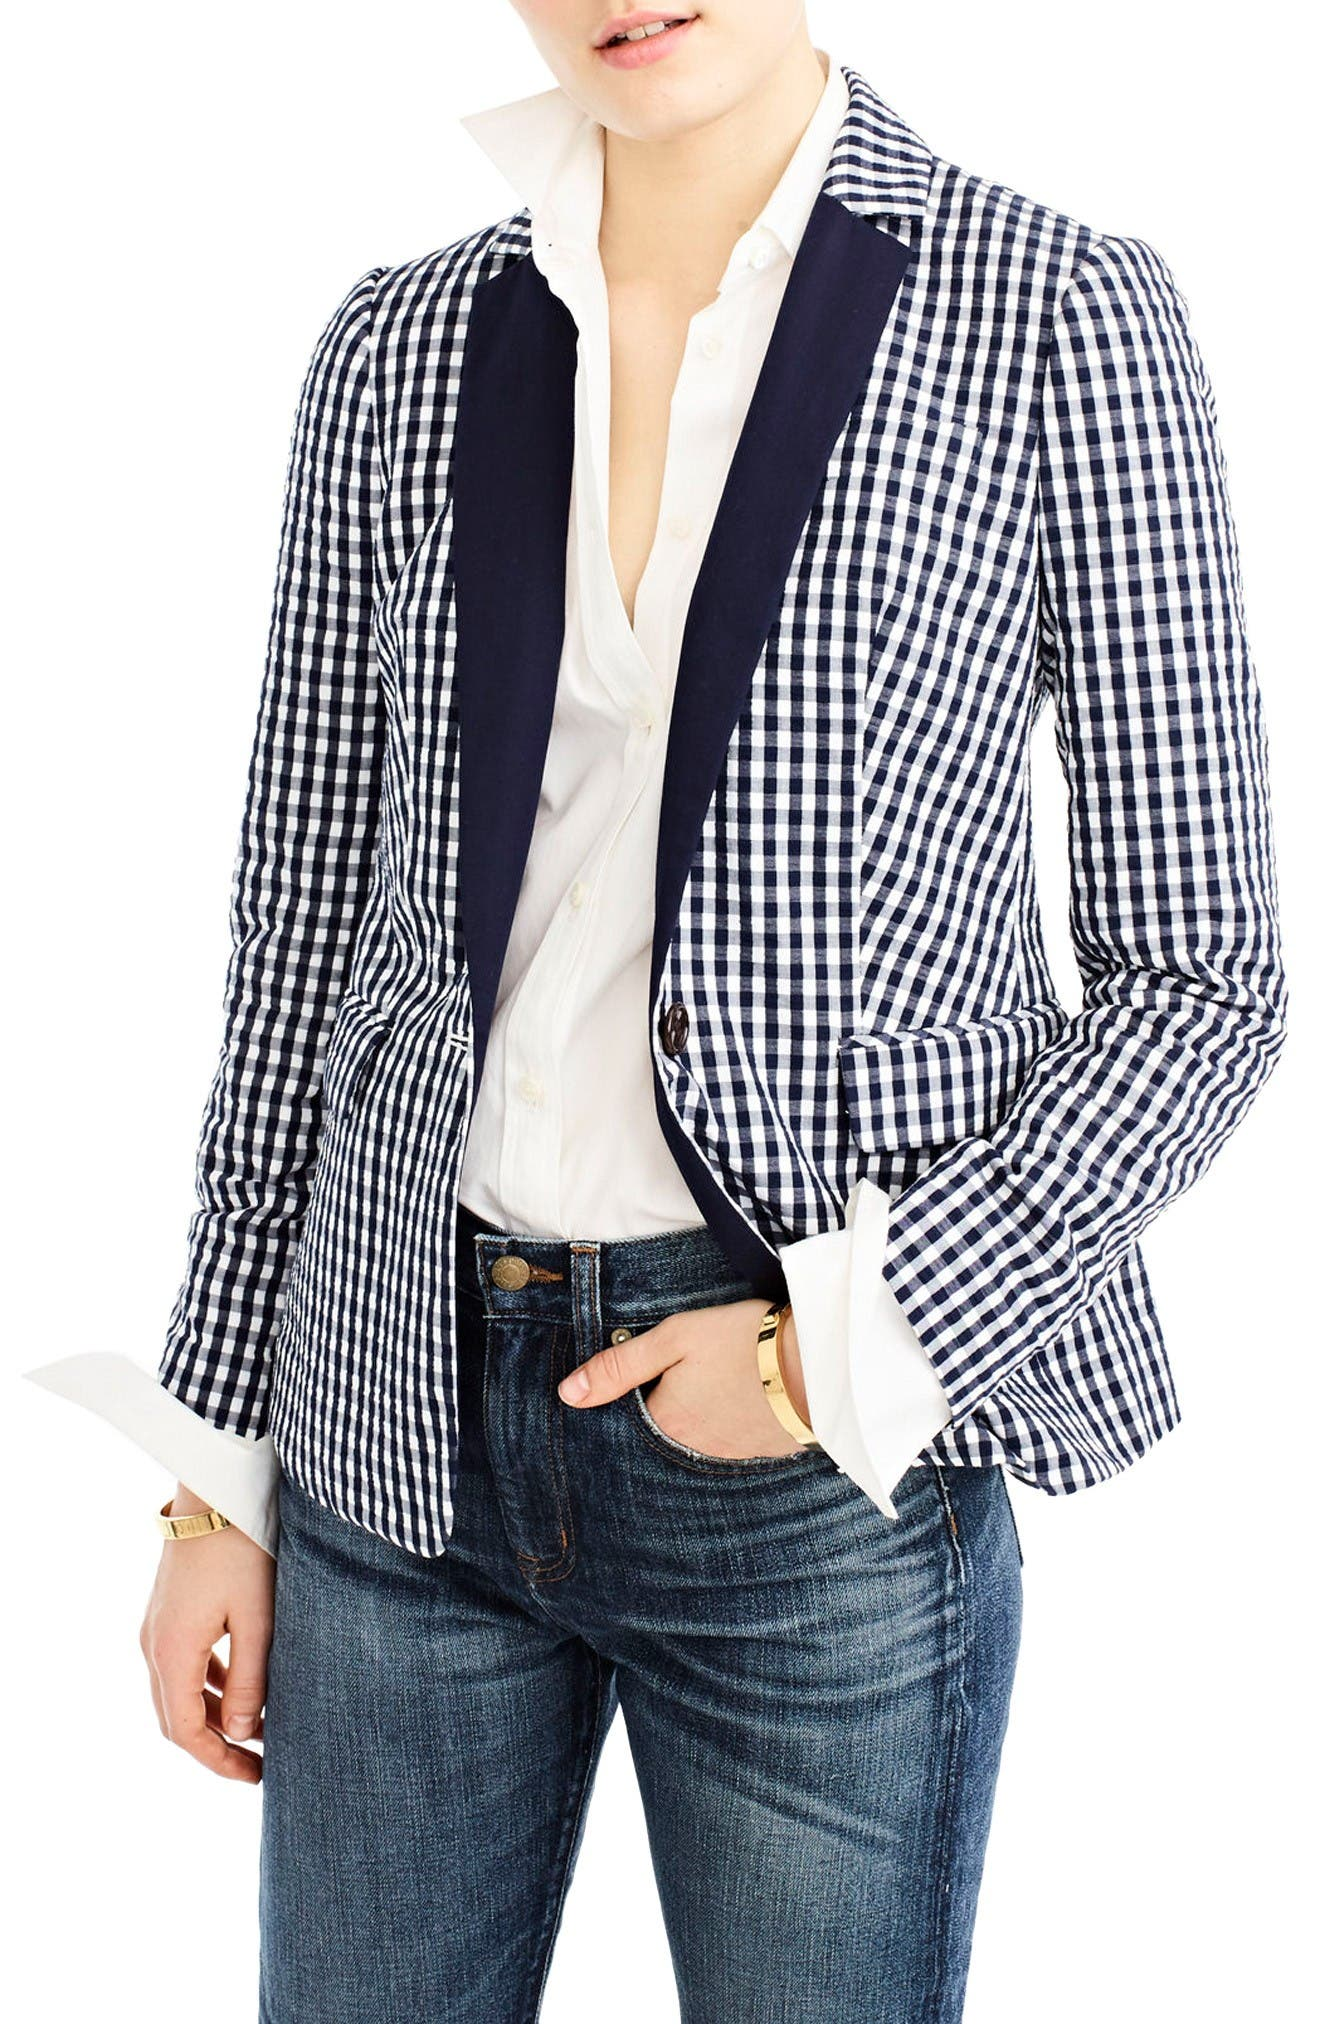 Main Image - J.Crew Solid Lapel Puckered Gingham Blazer